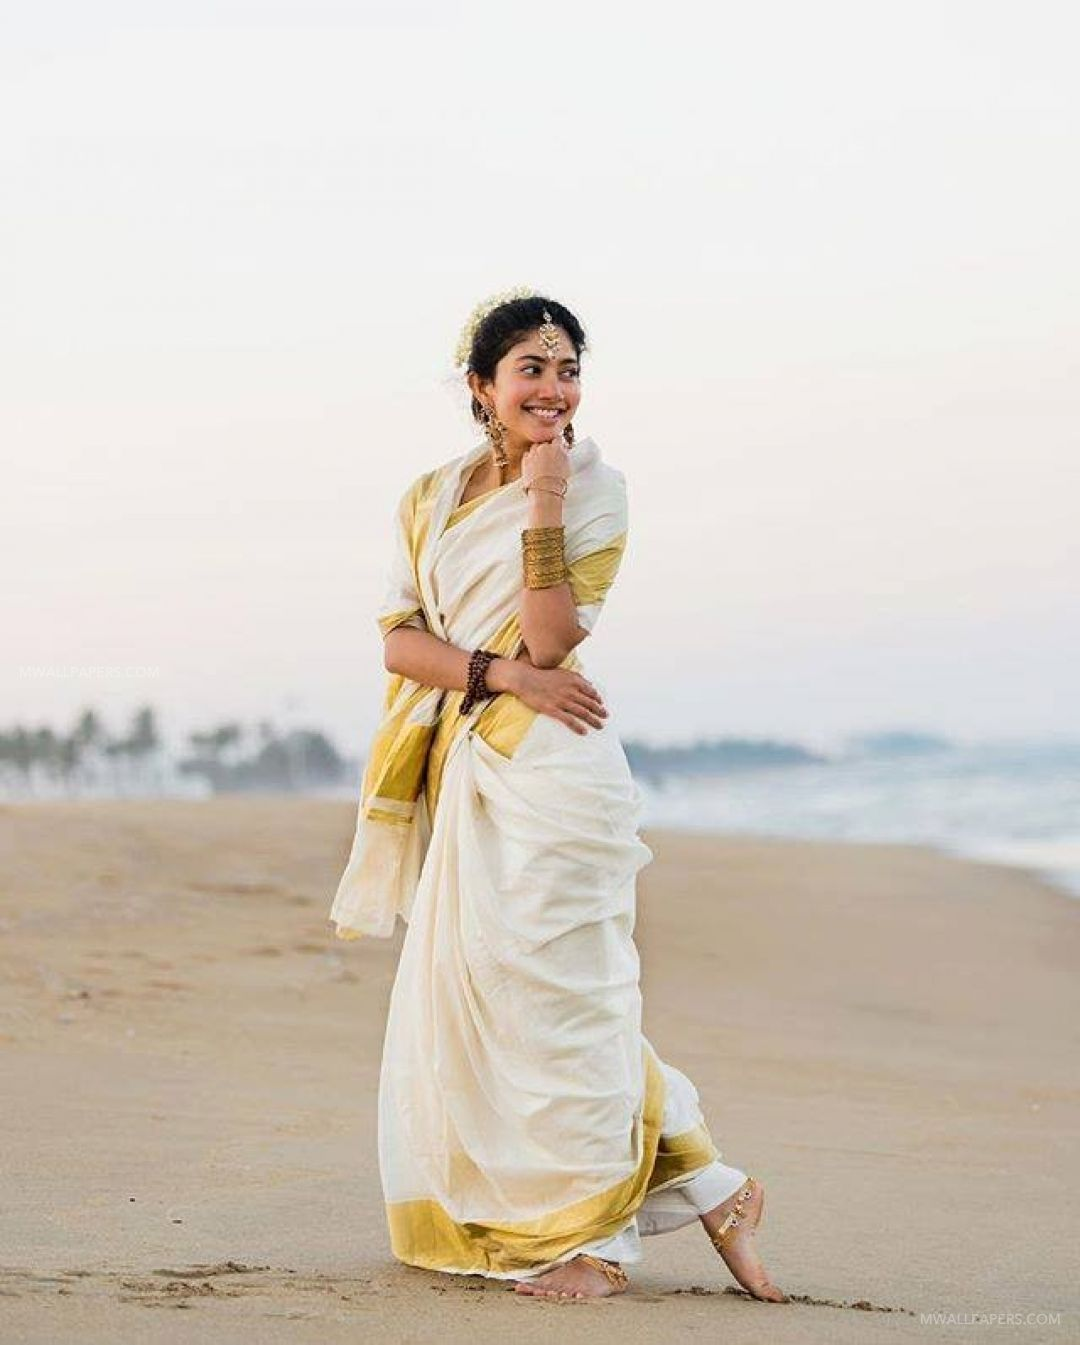 Sai Pallavi HD Wallpapers (Desktop Background / Android / iPhone) (1080p, 4k) (41724) - Sai Pallavi